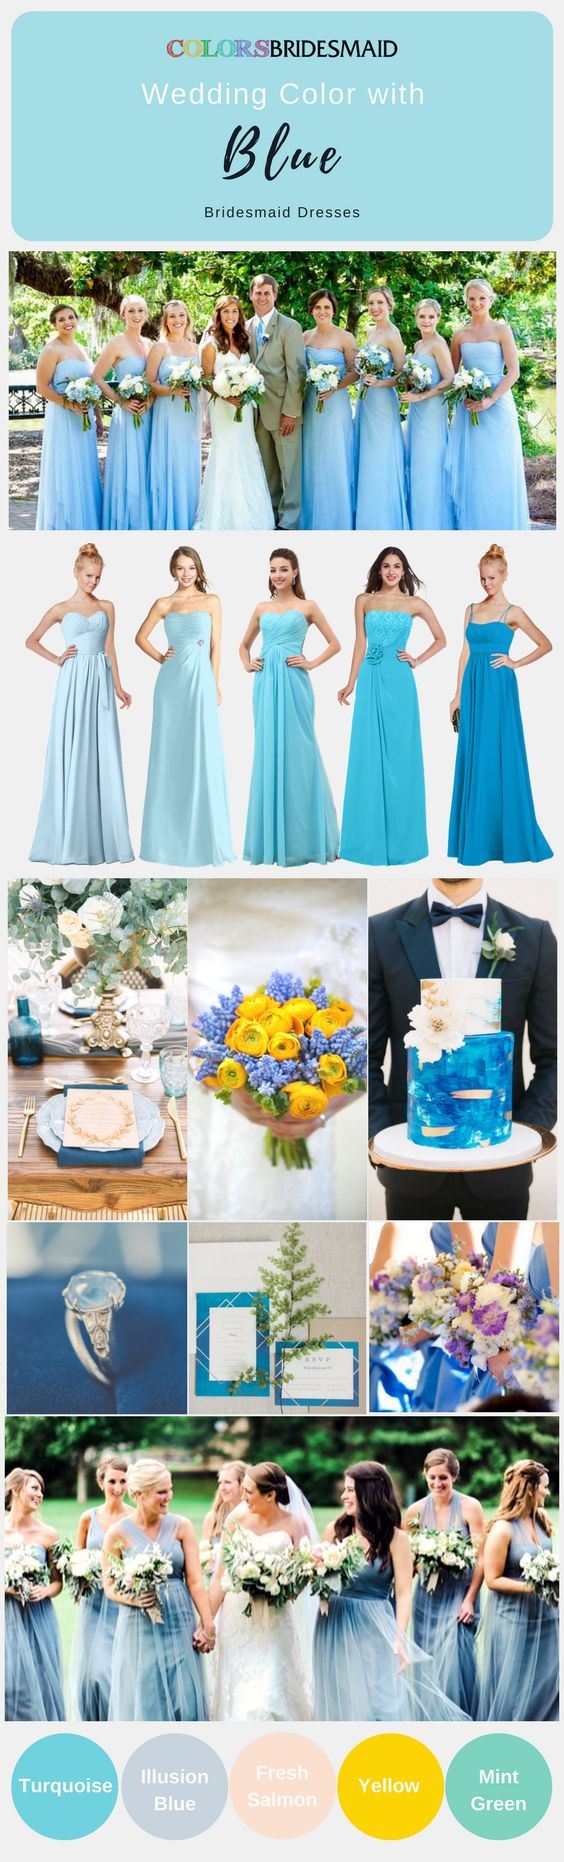 Chiffon long bridesmaid dresses in blue hue(ice blue, aqua, turquoise, cornflower blue etc) with A-line strapless styles are highly welcomed. All sizes including plus size of these cheap bridesmaid dresses are available.